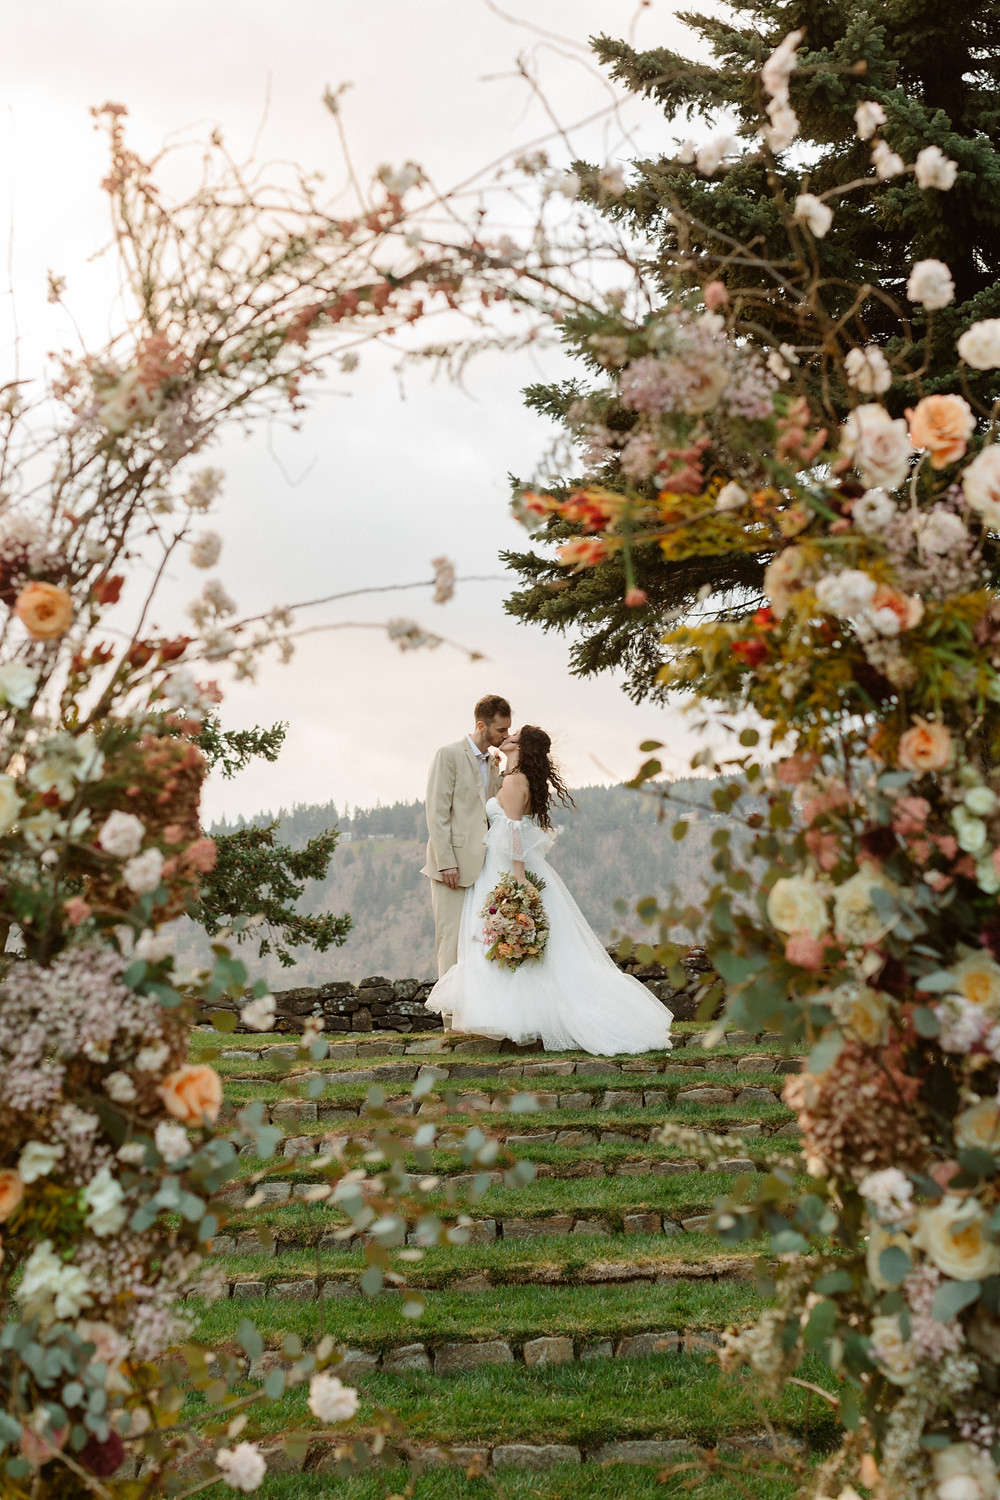 A full and organic-looking floral arch, made with spring time pinks and lush greens. A couple, male in tan tux and female in a flowy white tulle wedding dress, kiss in the distance through the arch.